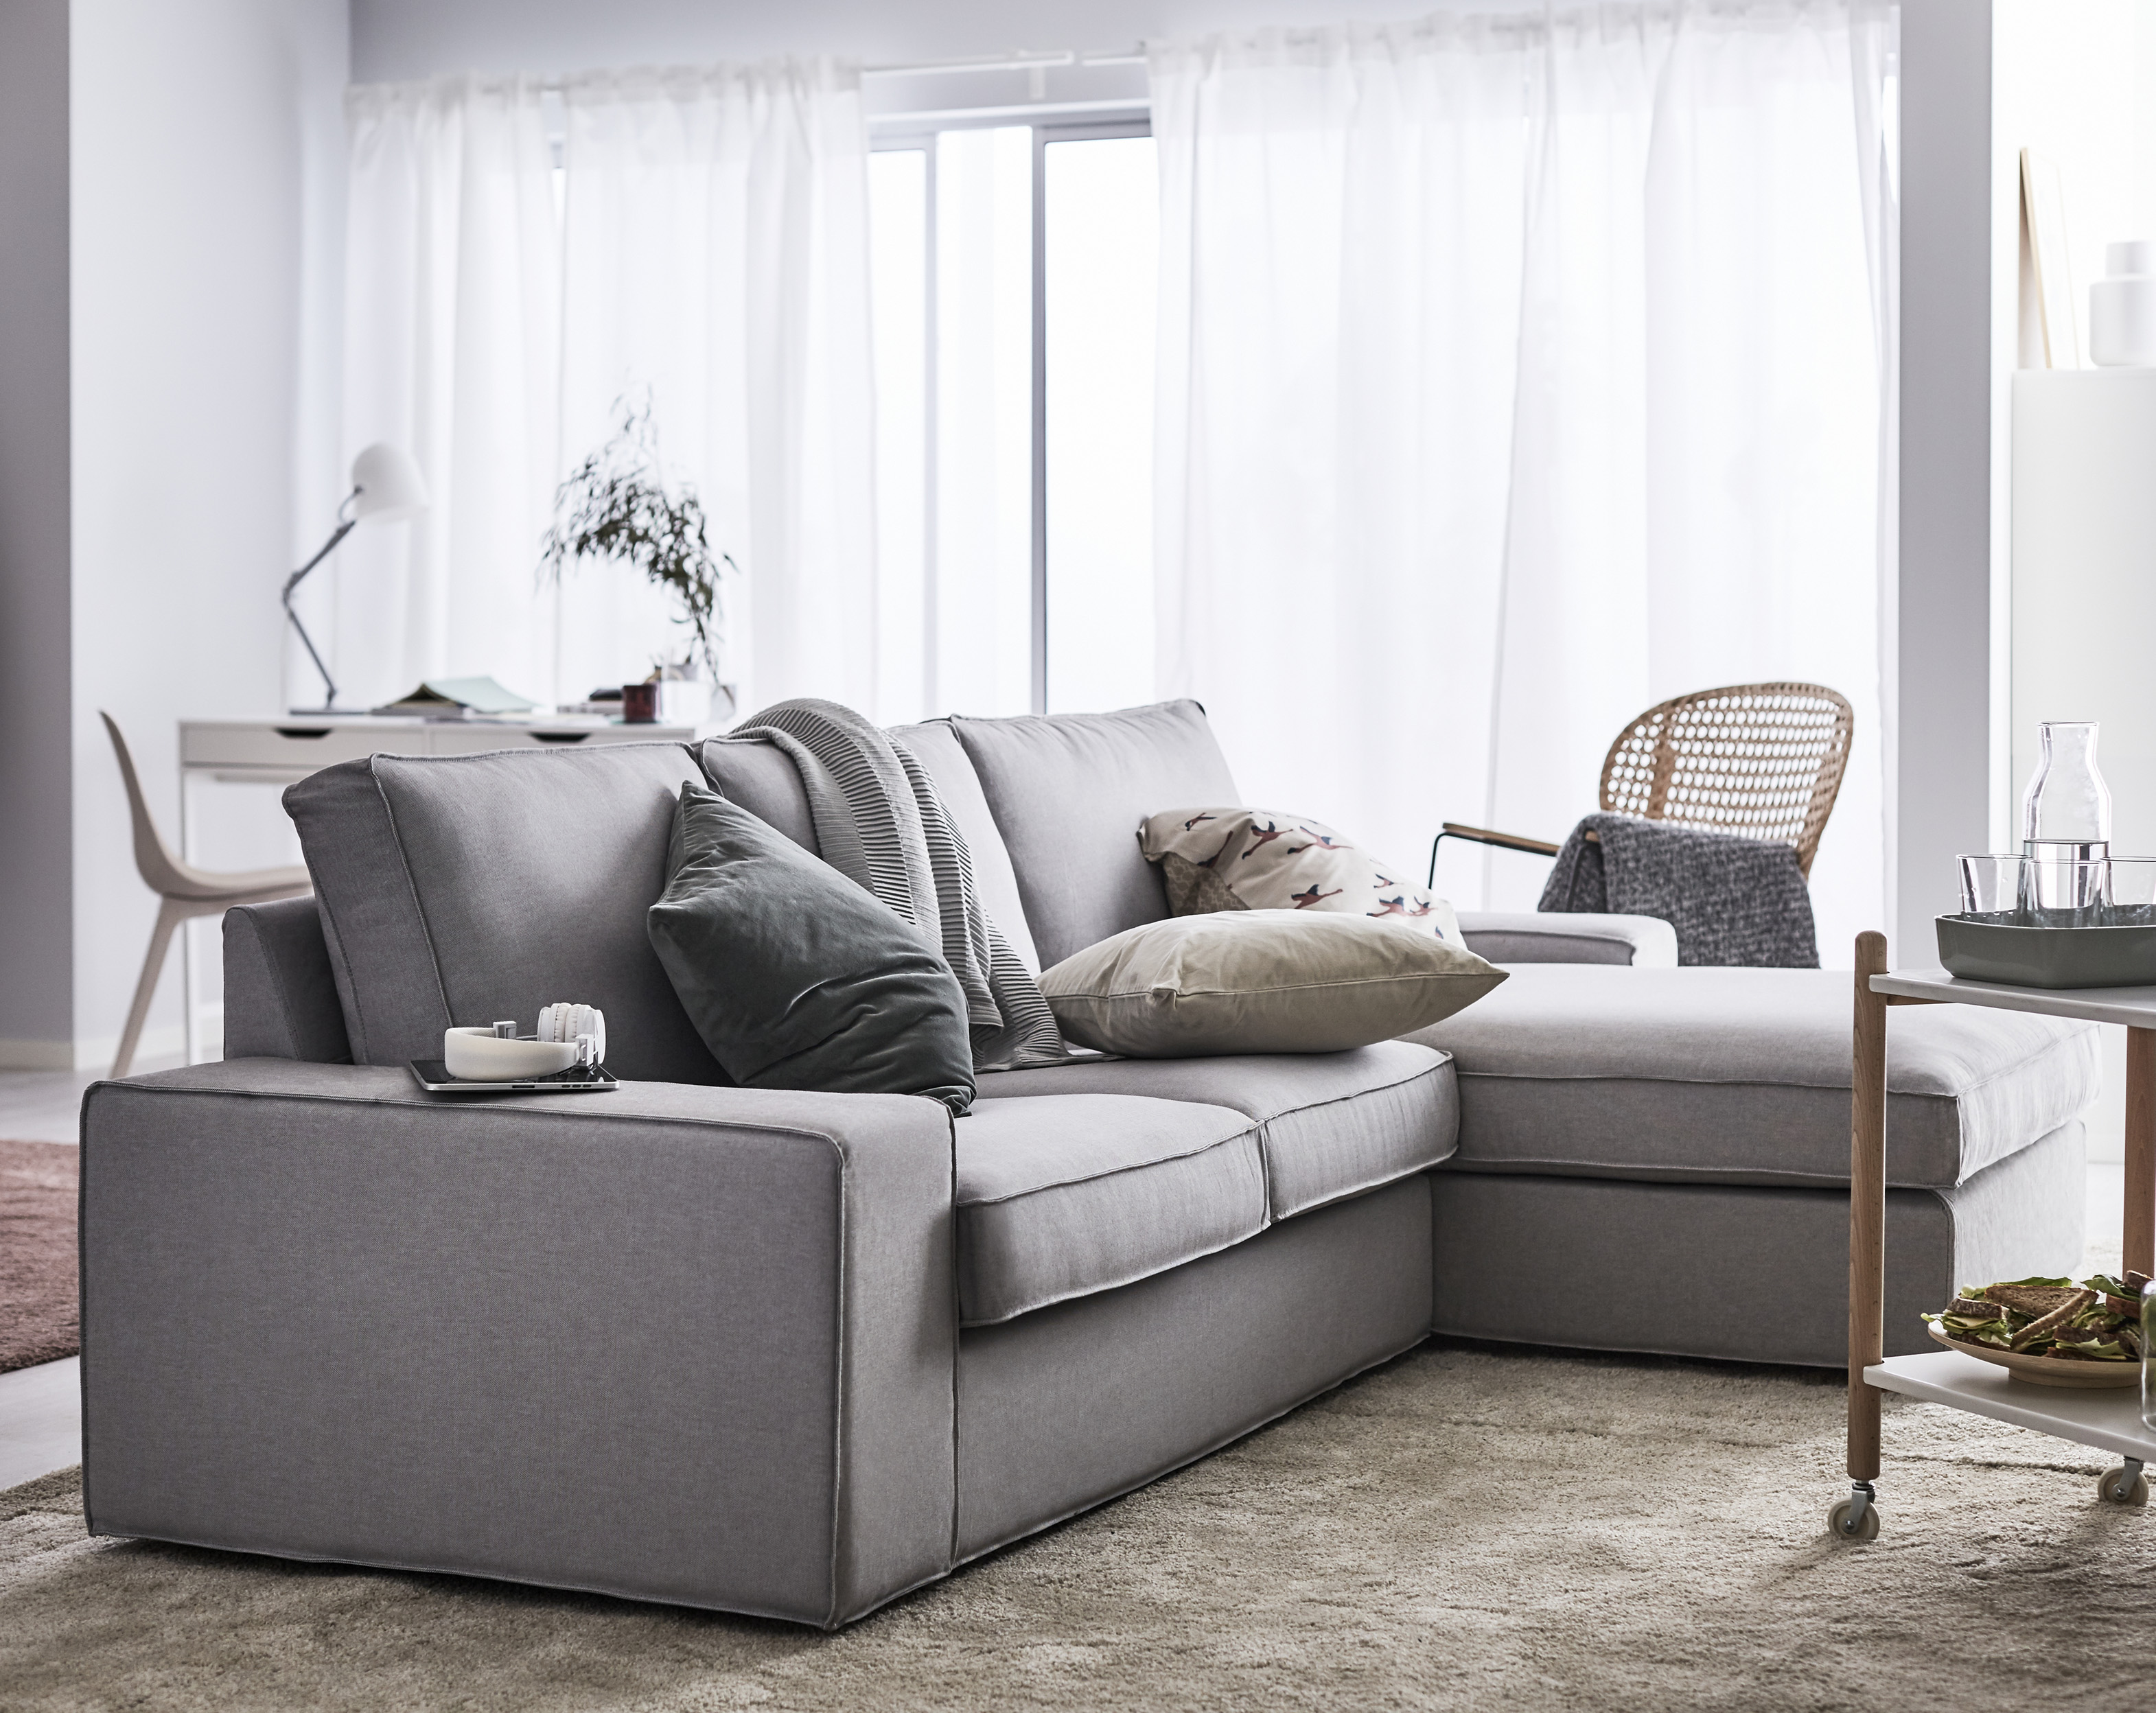 Kivik 3-seater sofa, with chaise longue, in Hillared anthracite, £740, has a memory foam filling and cotton for the cover comes from a sustainable source, Ikea (Ikea/PA)